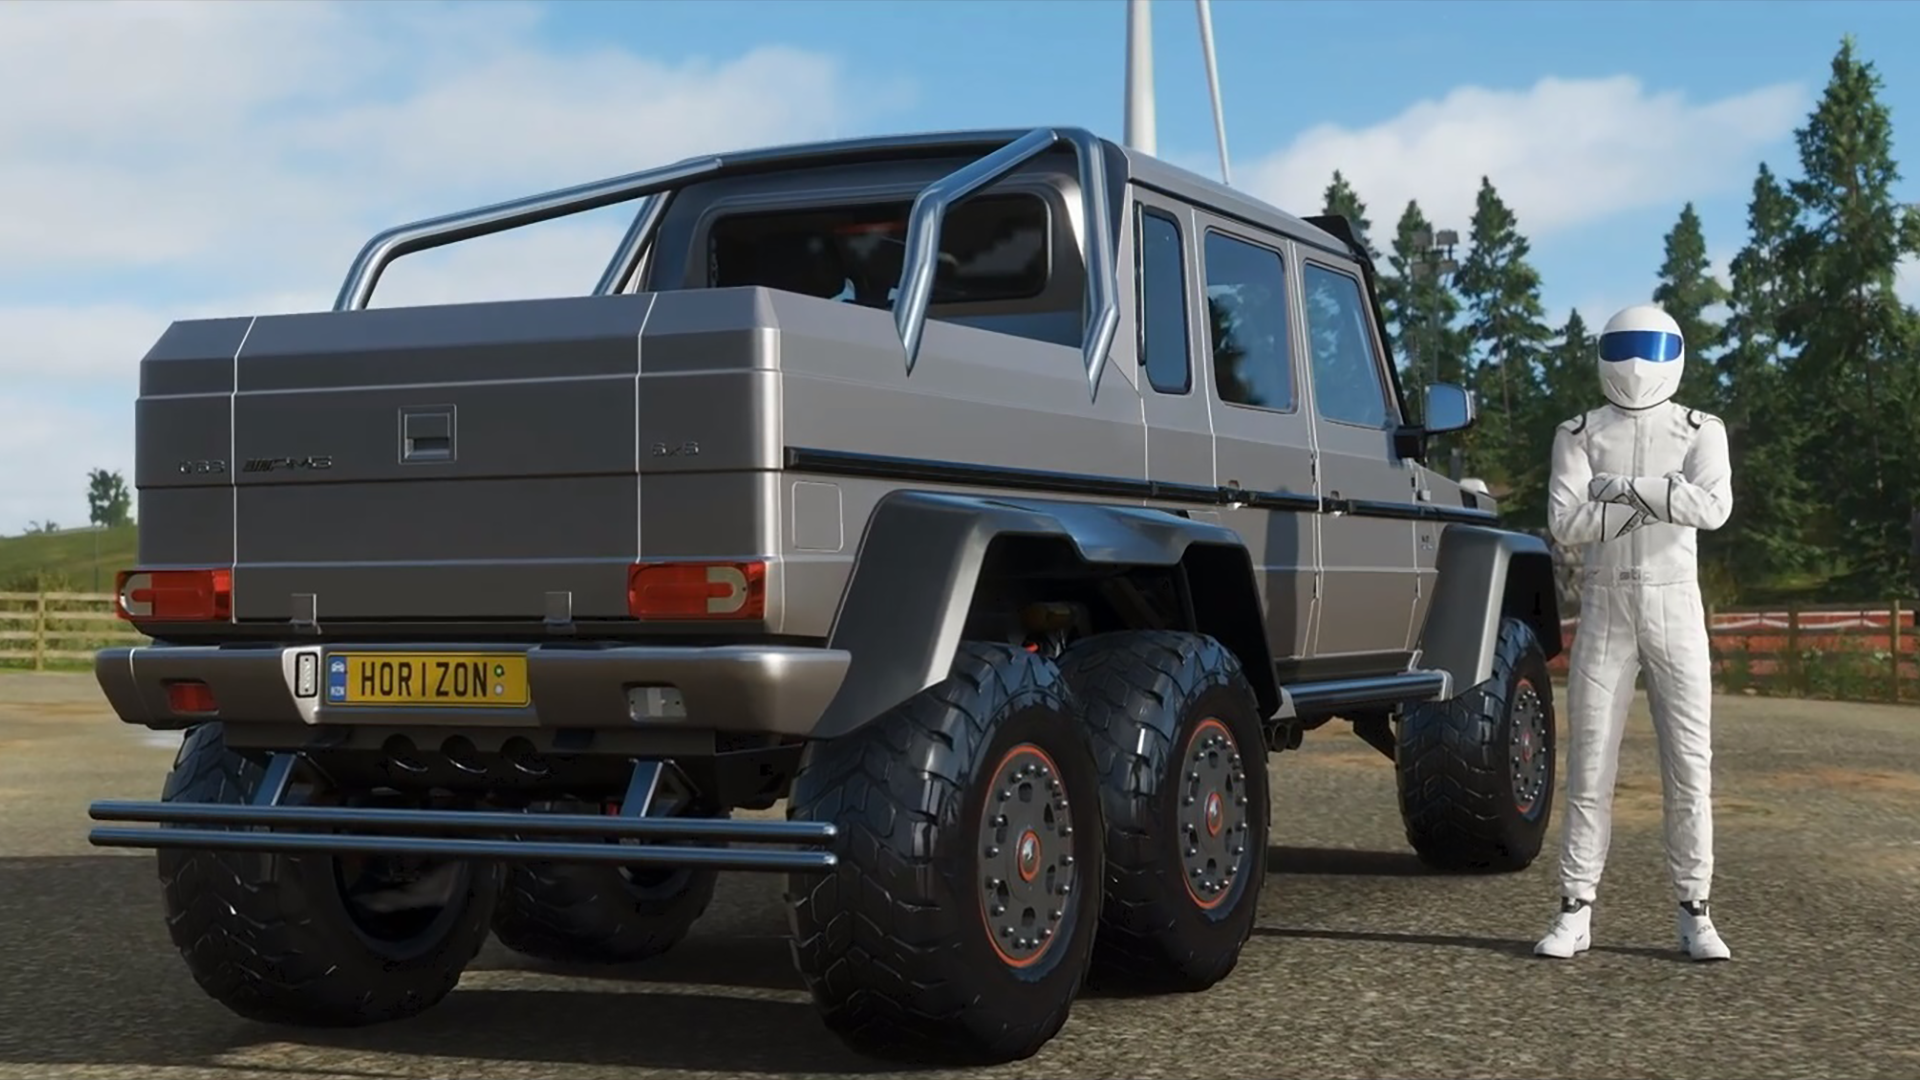 Forza Horizon 4 Update 11 Adds Top Gear Car Pack, New